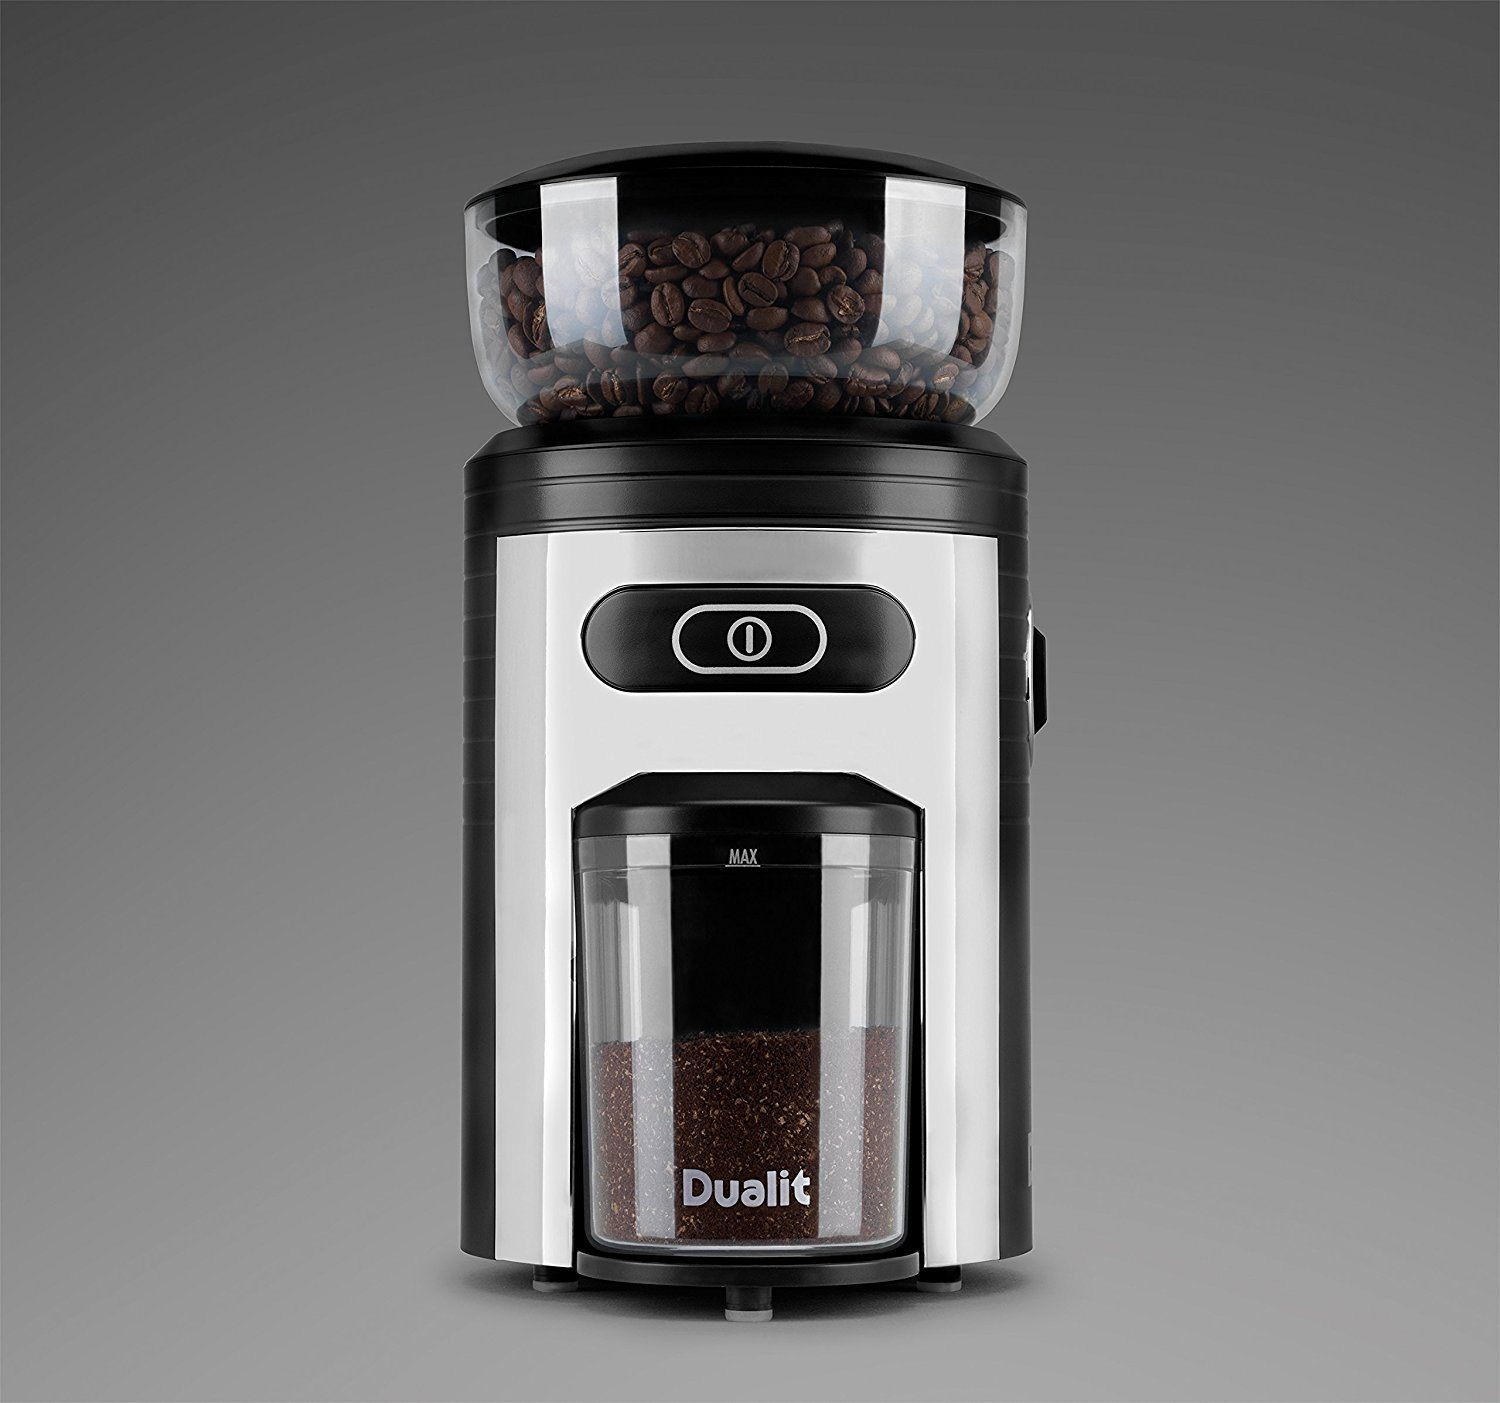 dualit 75015 burr coffee grinder uk review the perfect grind. Black Bedroom Furniture Sets. Home Design Ideas